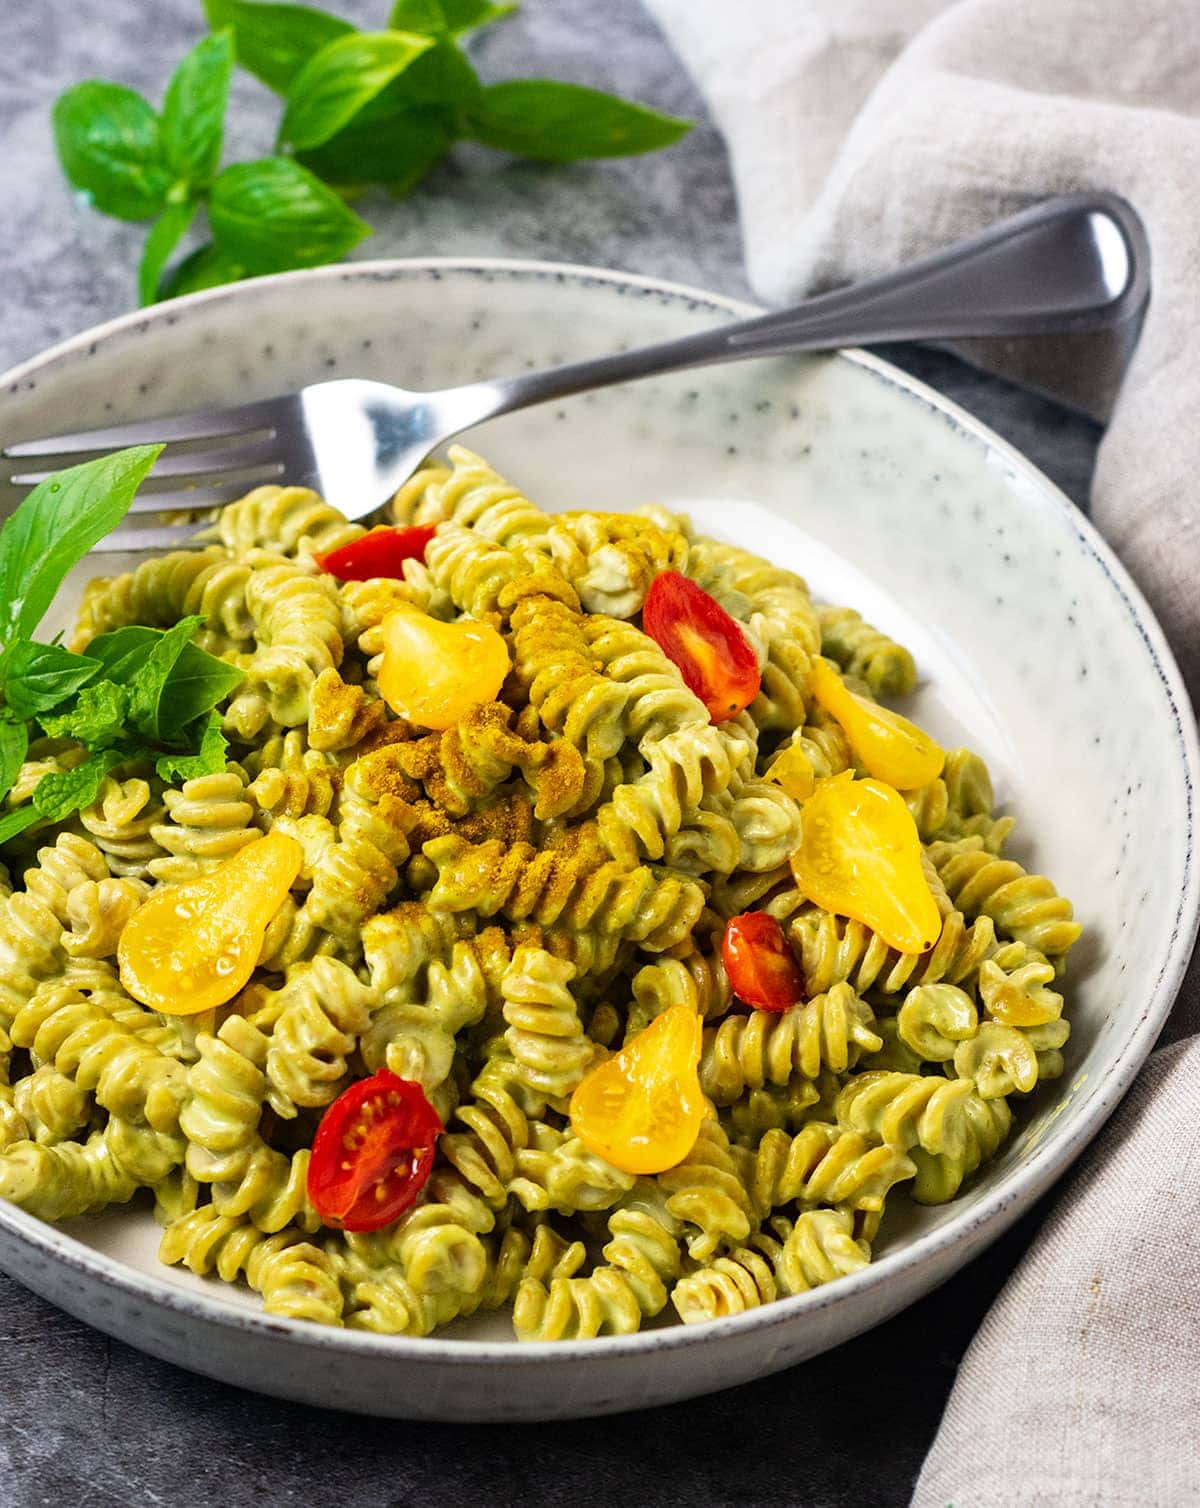 Straight on of creamy vegan pesto pasta in a beige bowl on a grey background with a silver spoon garnished with tomatoes and basil leaves